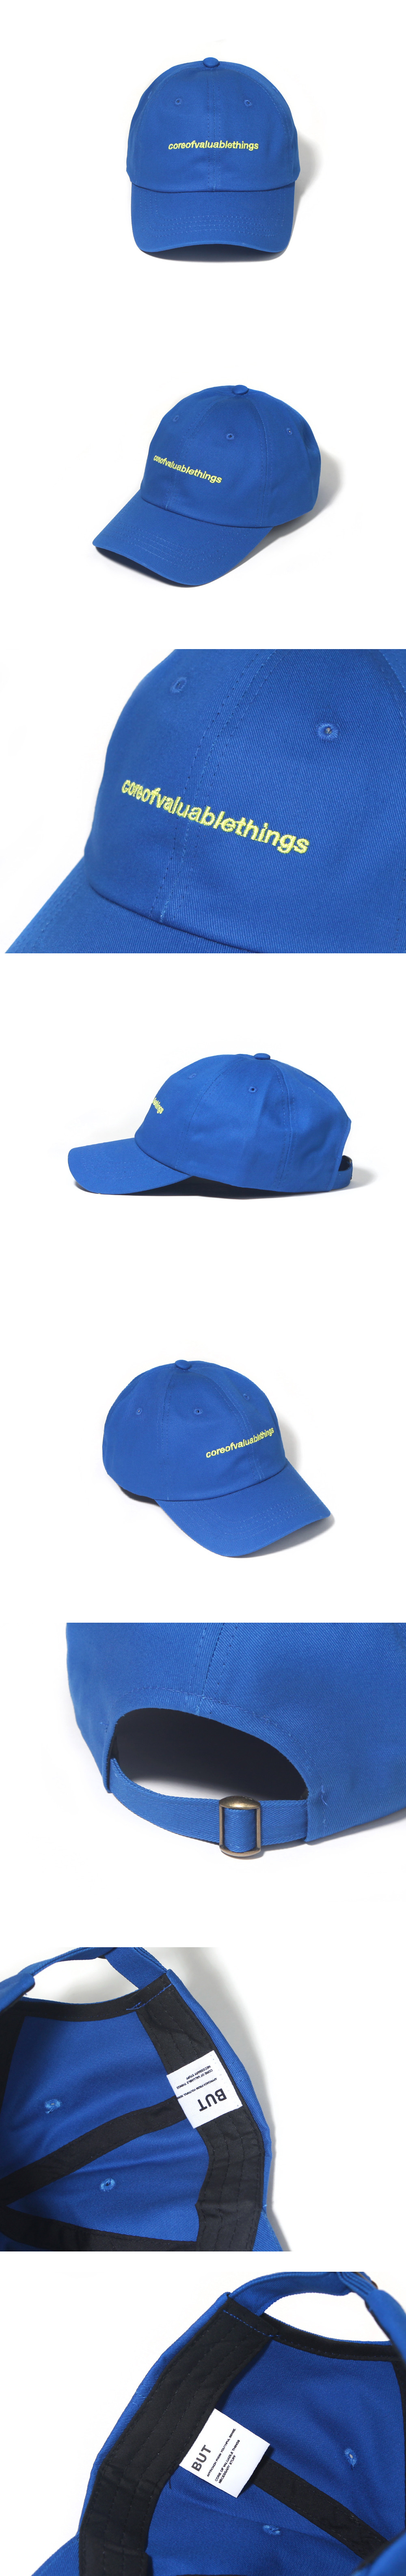 N CORE CURVED CAP-COBALT BLUE